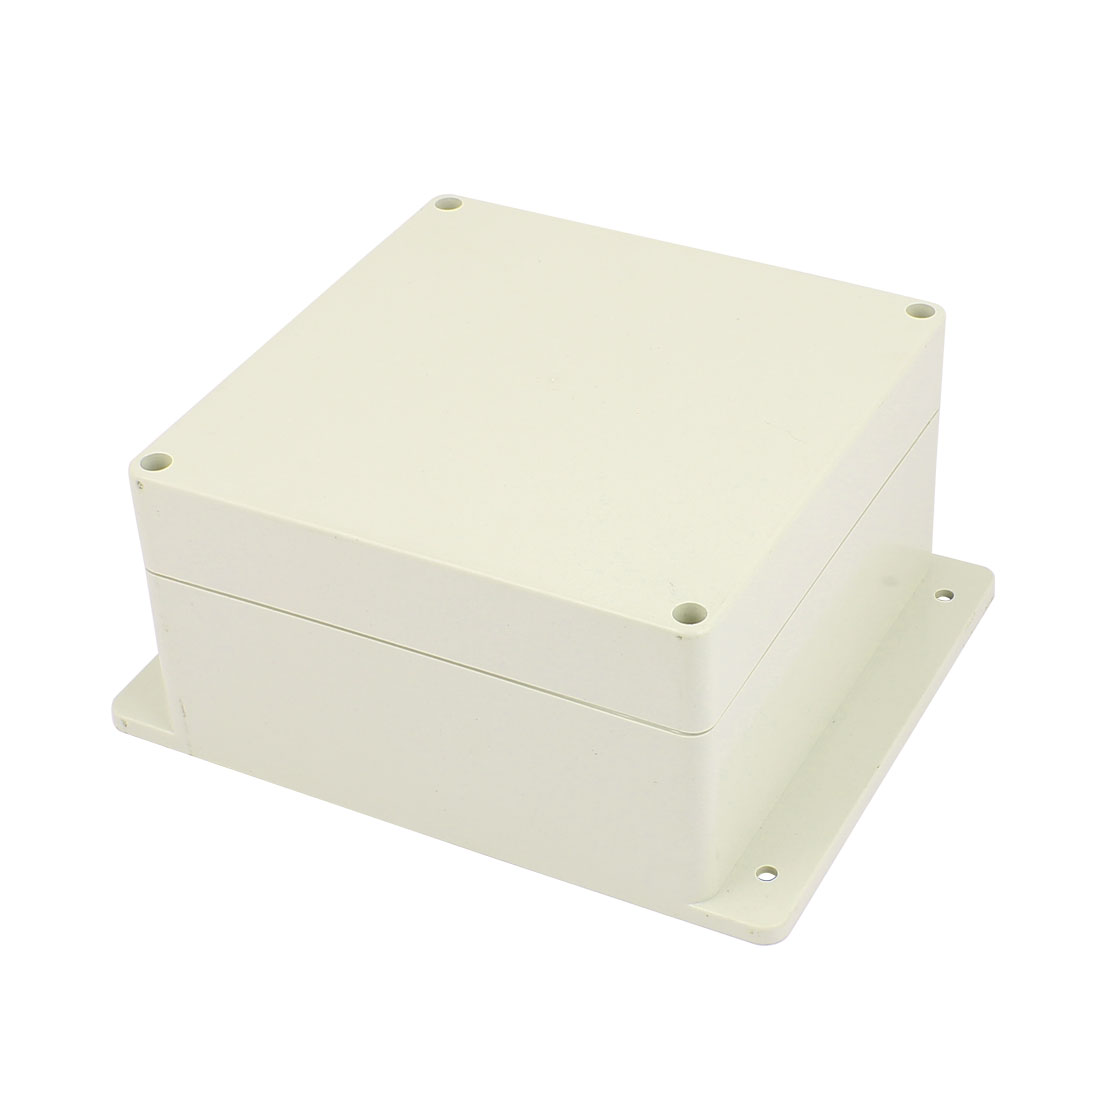 Dustproof IP65 Junction Box Case Terminal Connection Enclosure Adaptable 152mm x 152mm x 82mm